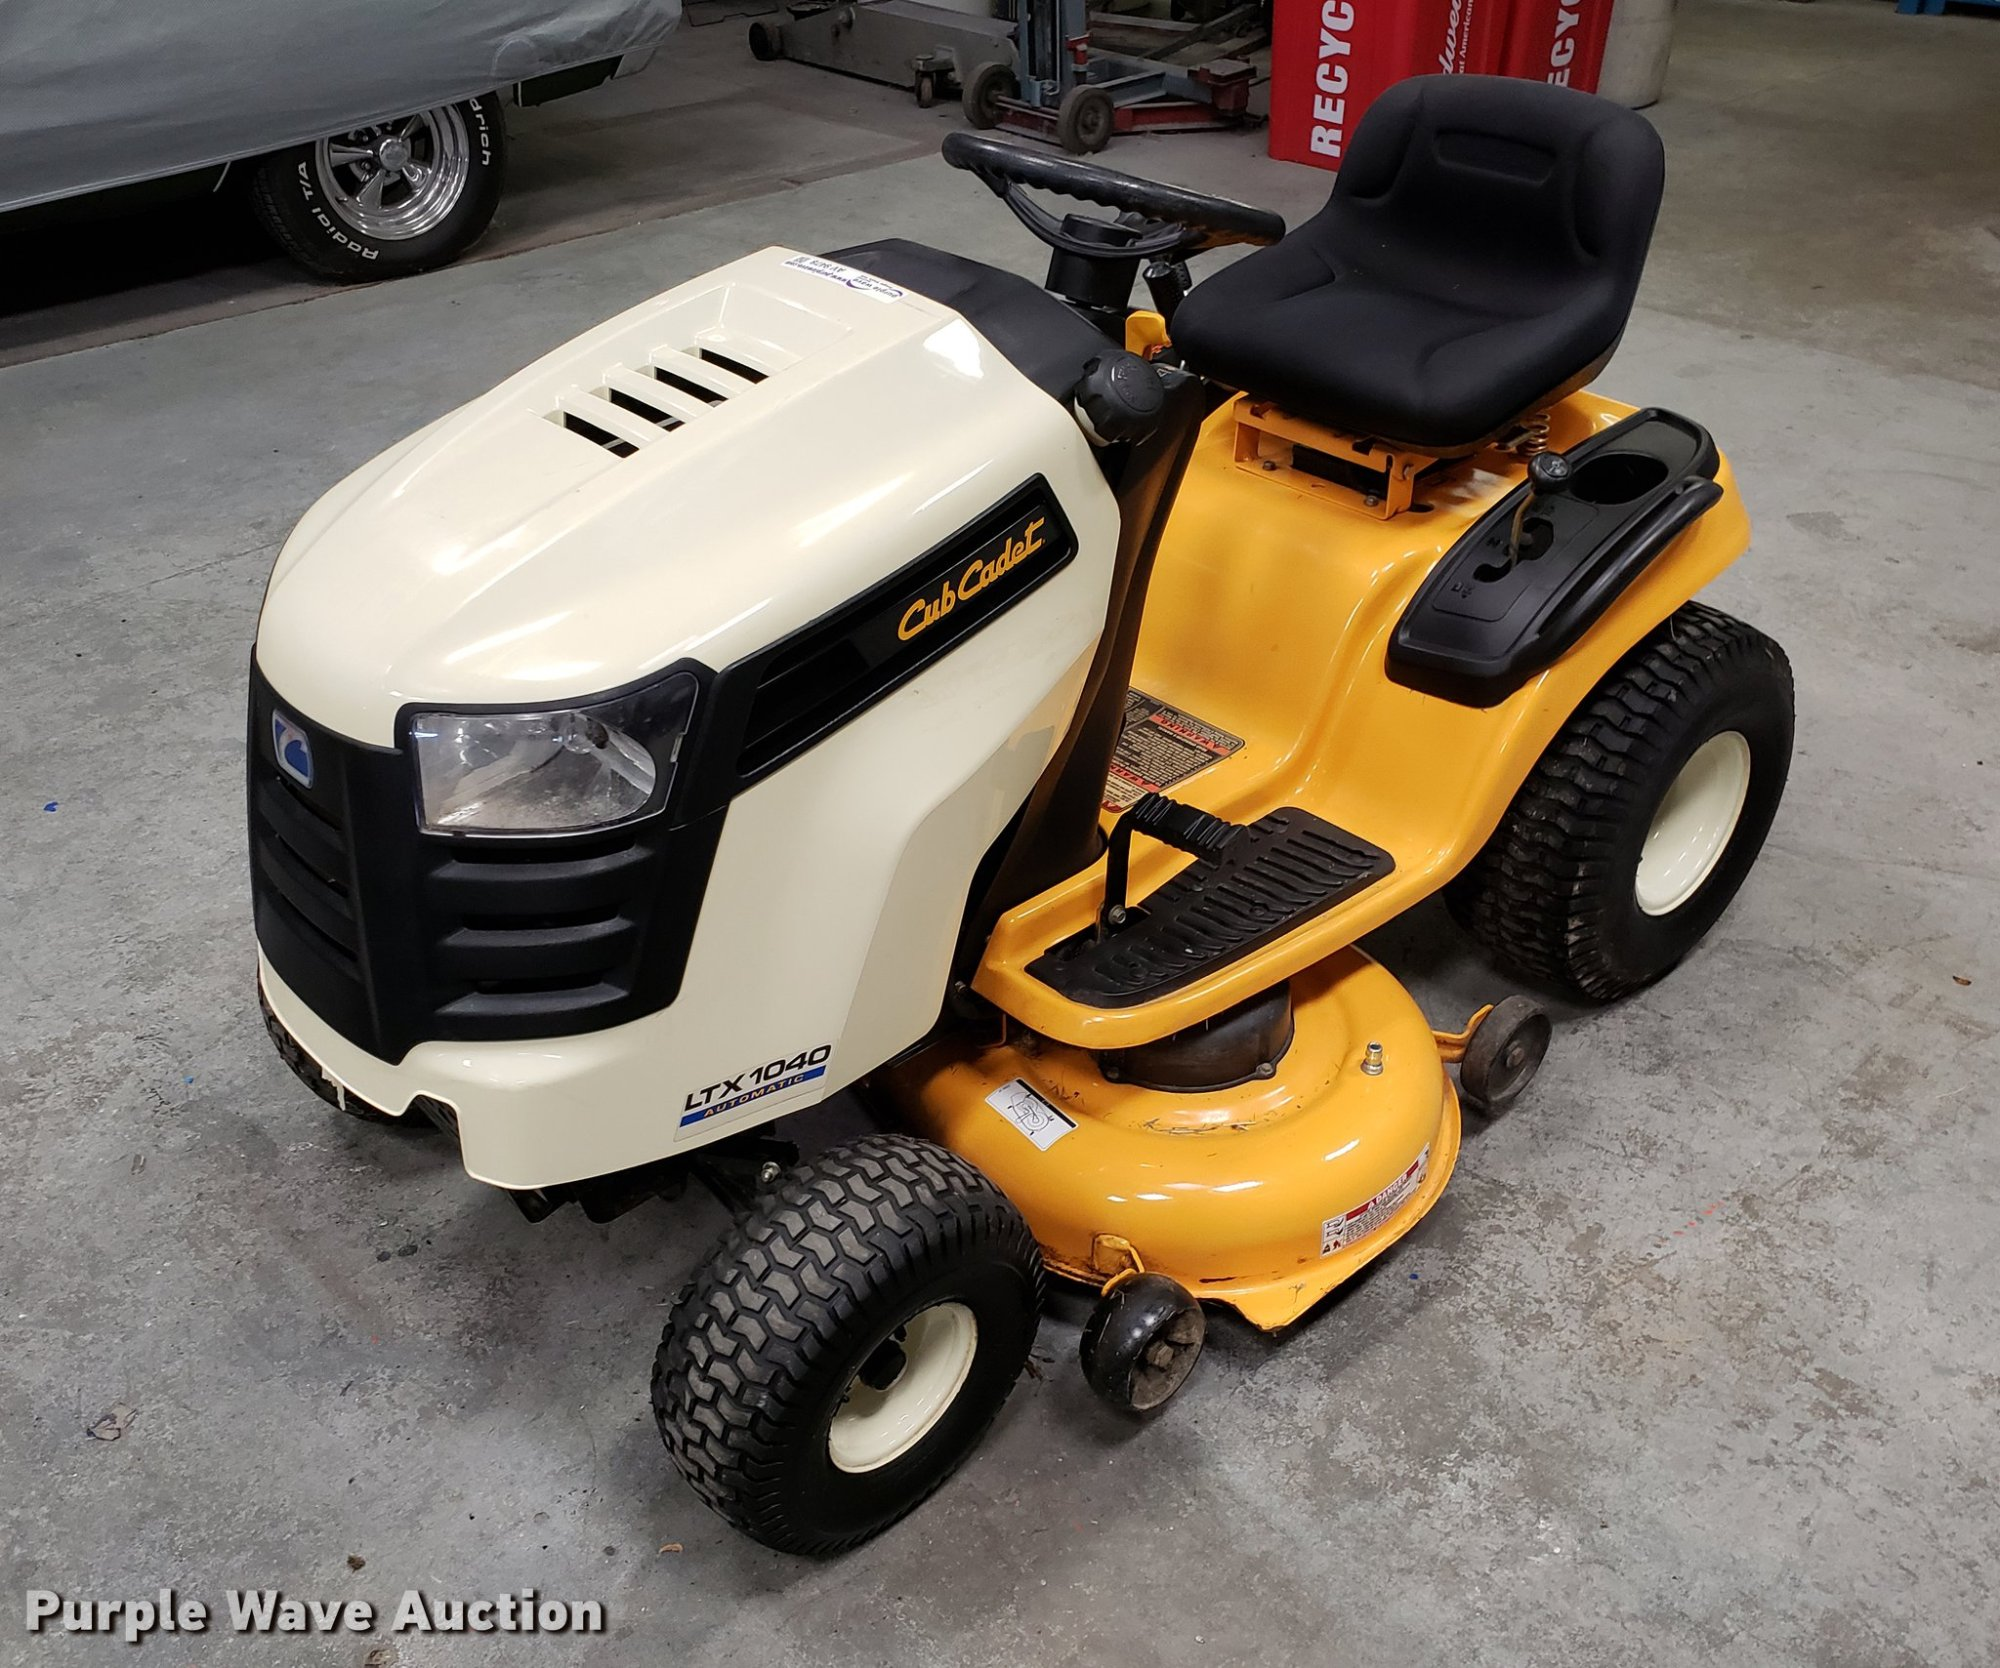 hight resolution of cub cadet ltx1040 lawn mower for sale in missouri